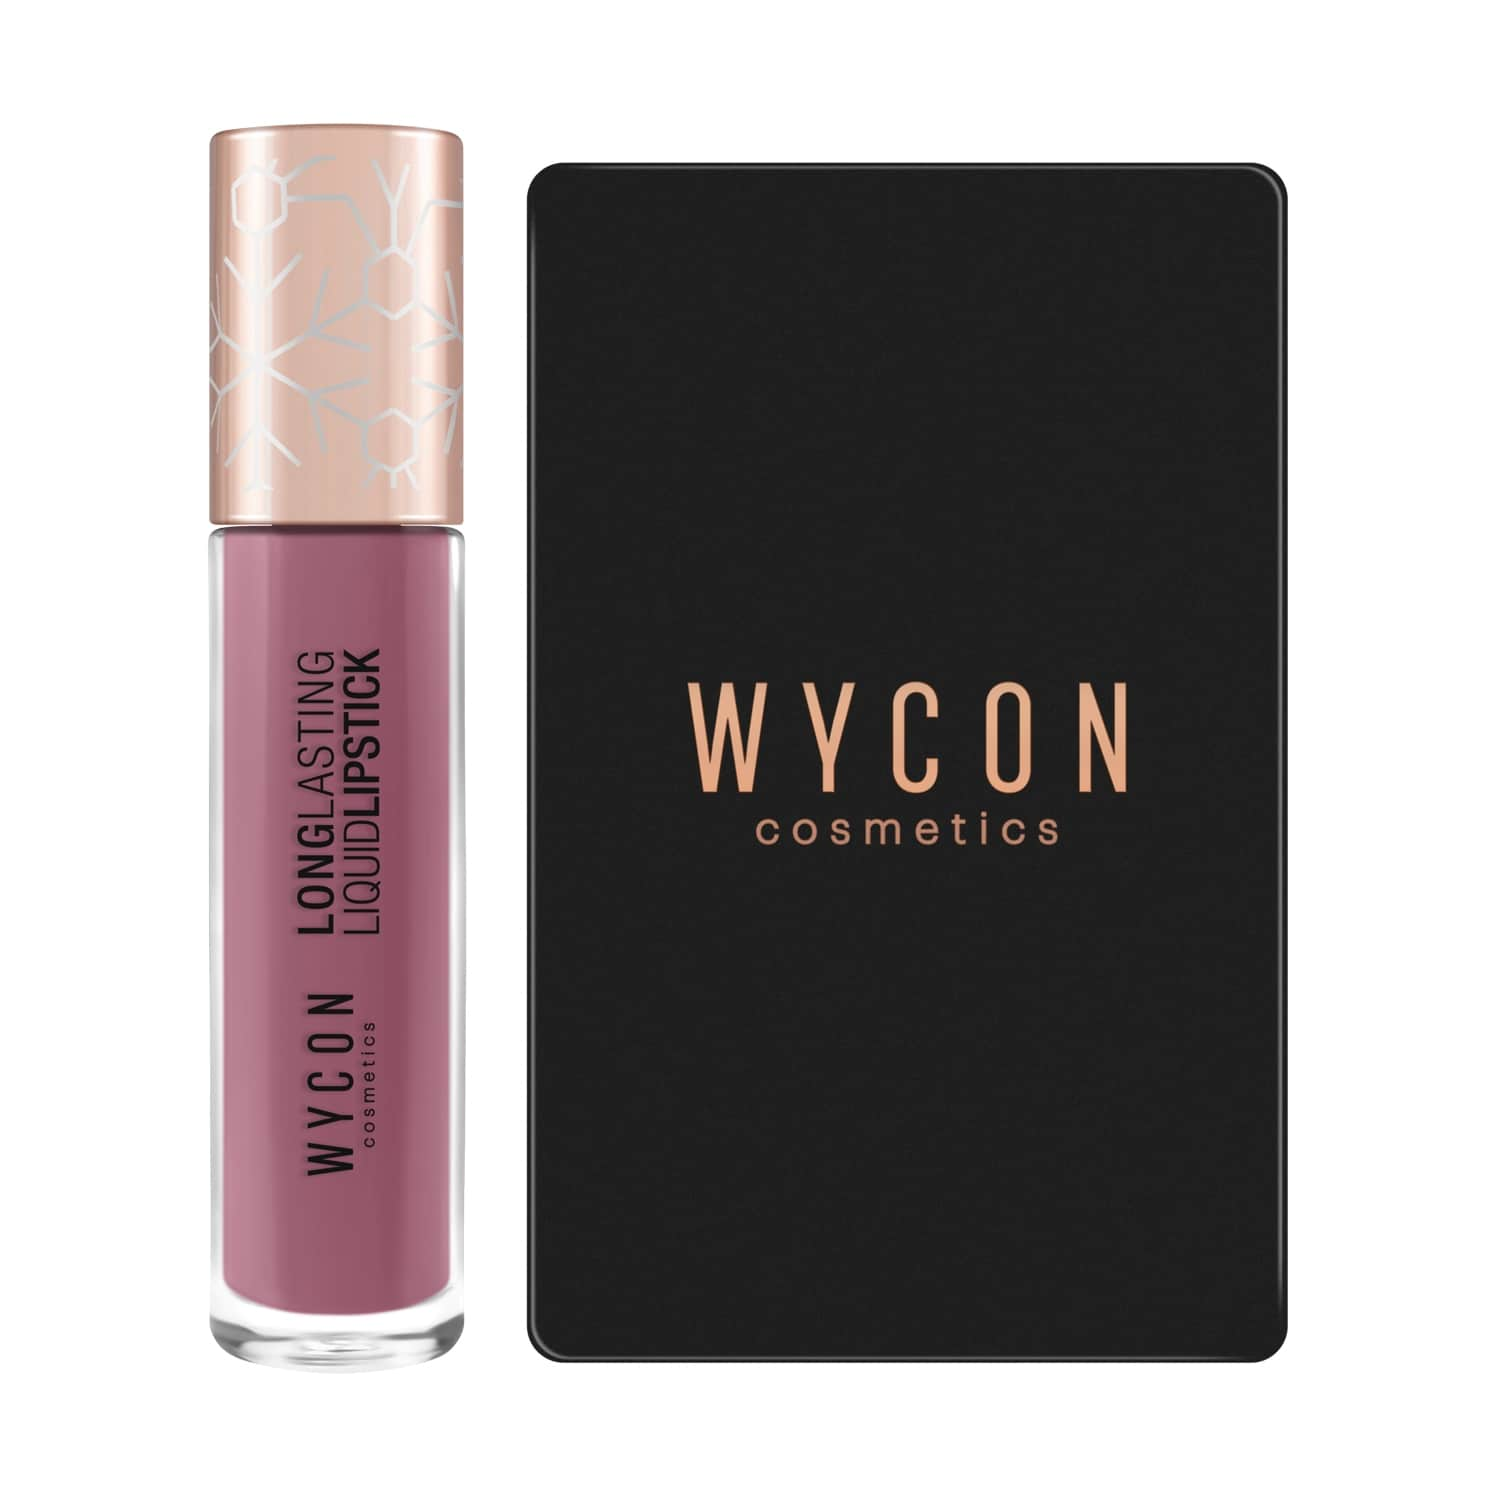 wycon-snow-diva-holiday-collection-kit-long-lasting-liquid-lipstick-specchio-01-pinkish-beige